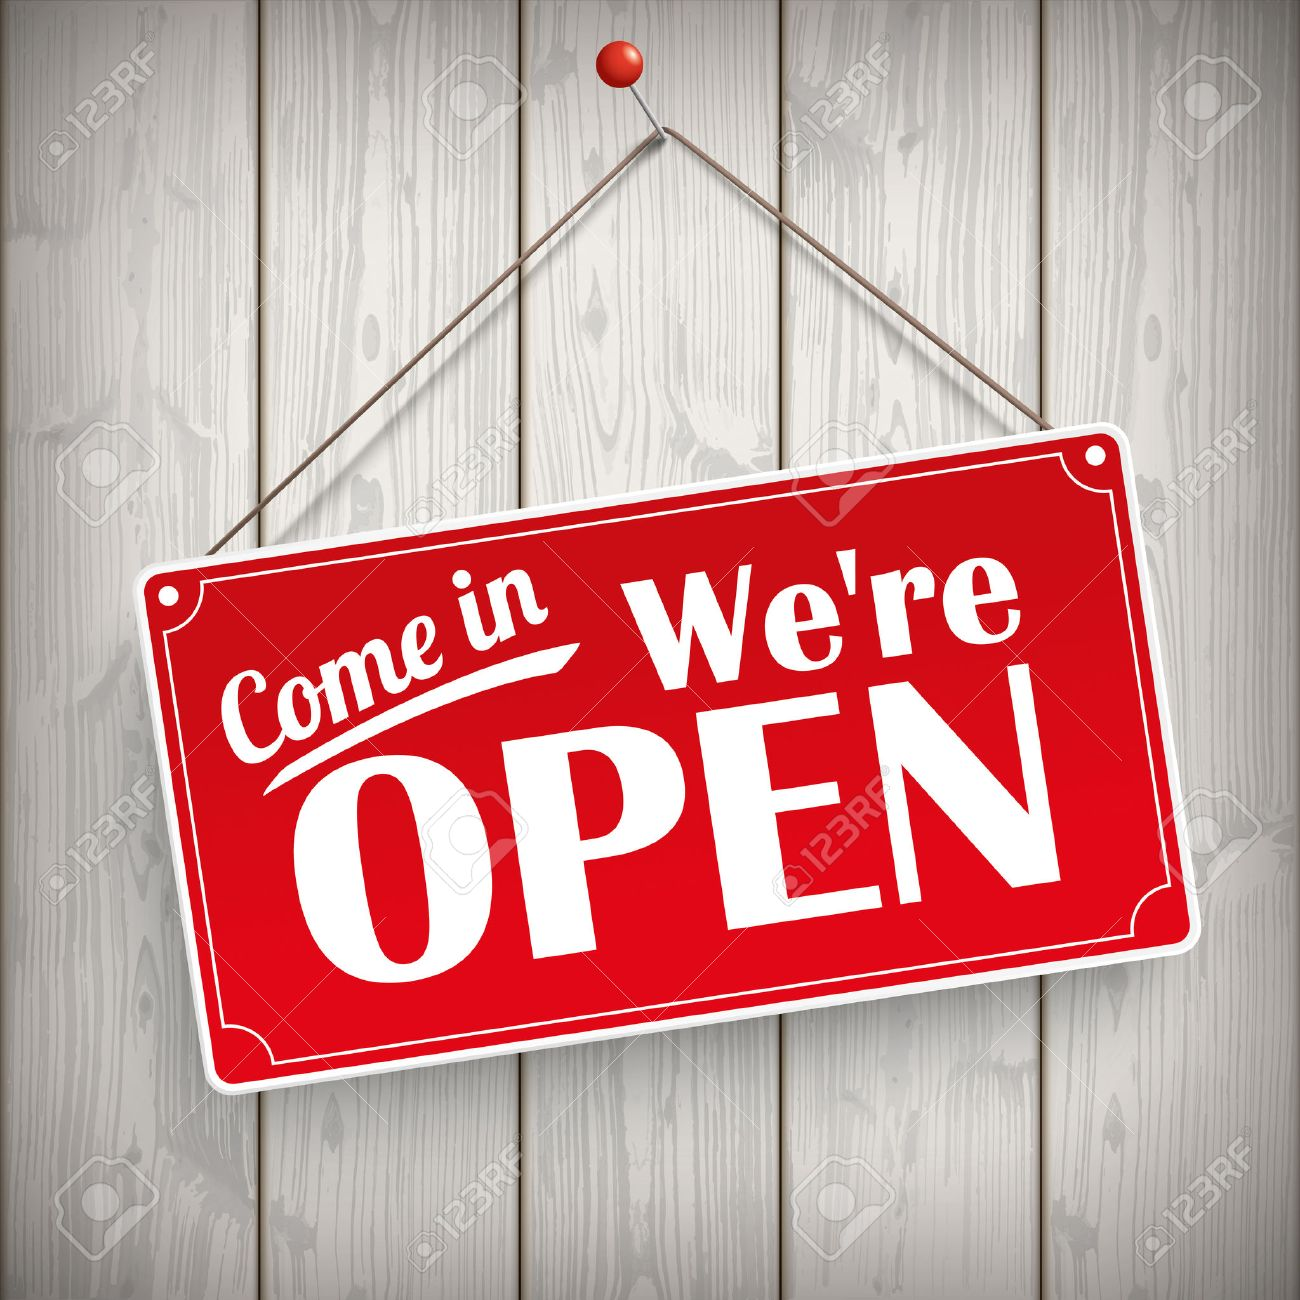 https://www.promotionmagazine.it/wp/wp-content/uploads/2020/05/56044829-red-hanging-sign-with-text-come-in-we-re-open-.jpg